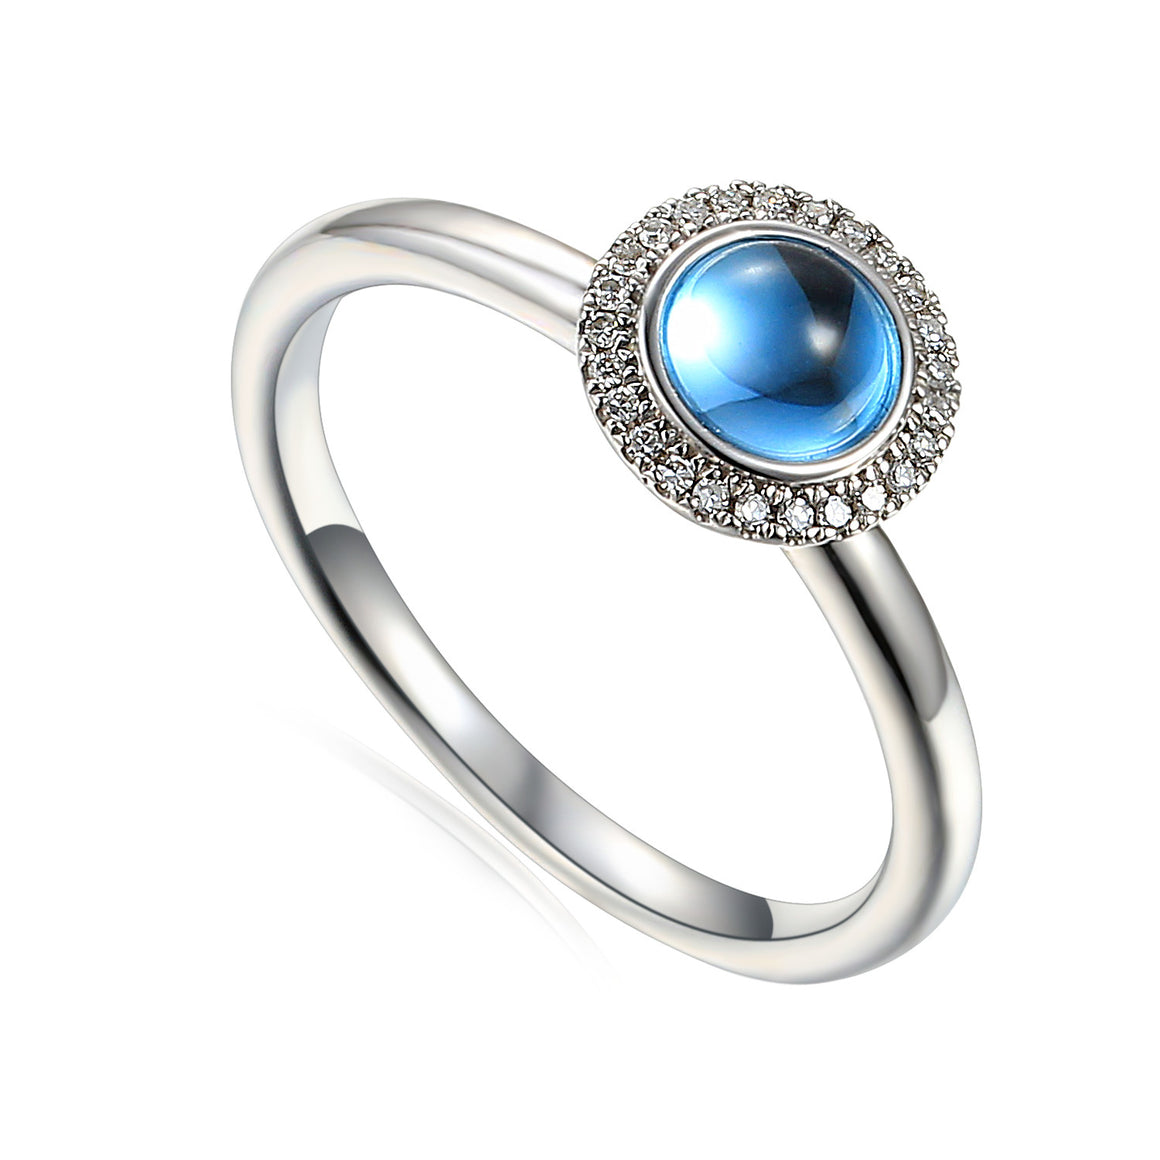 9ct White Gold Cabochon Blue Topaz and Diamond Ring